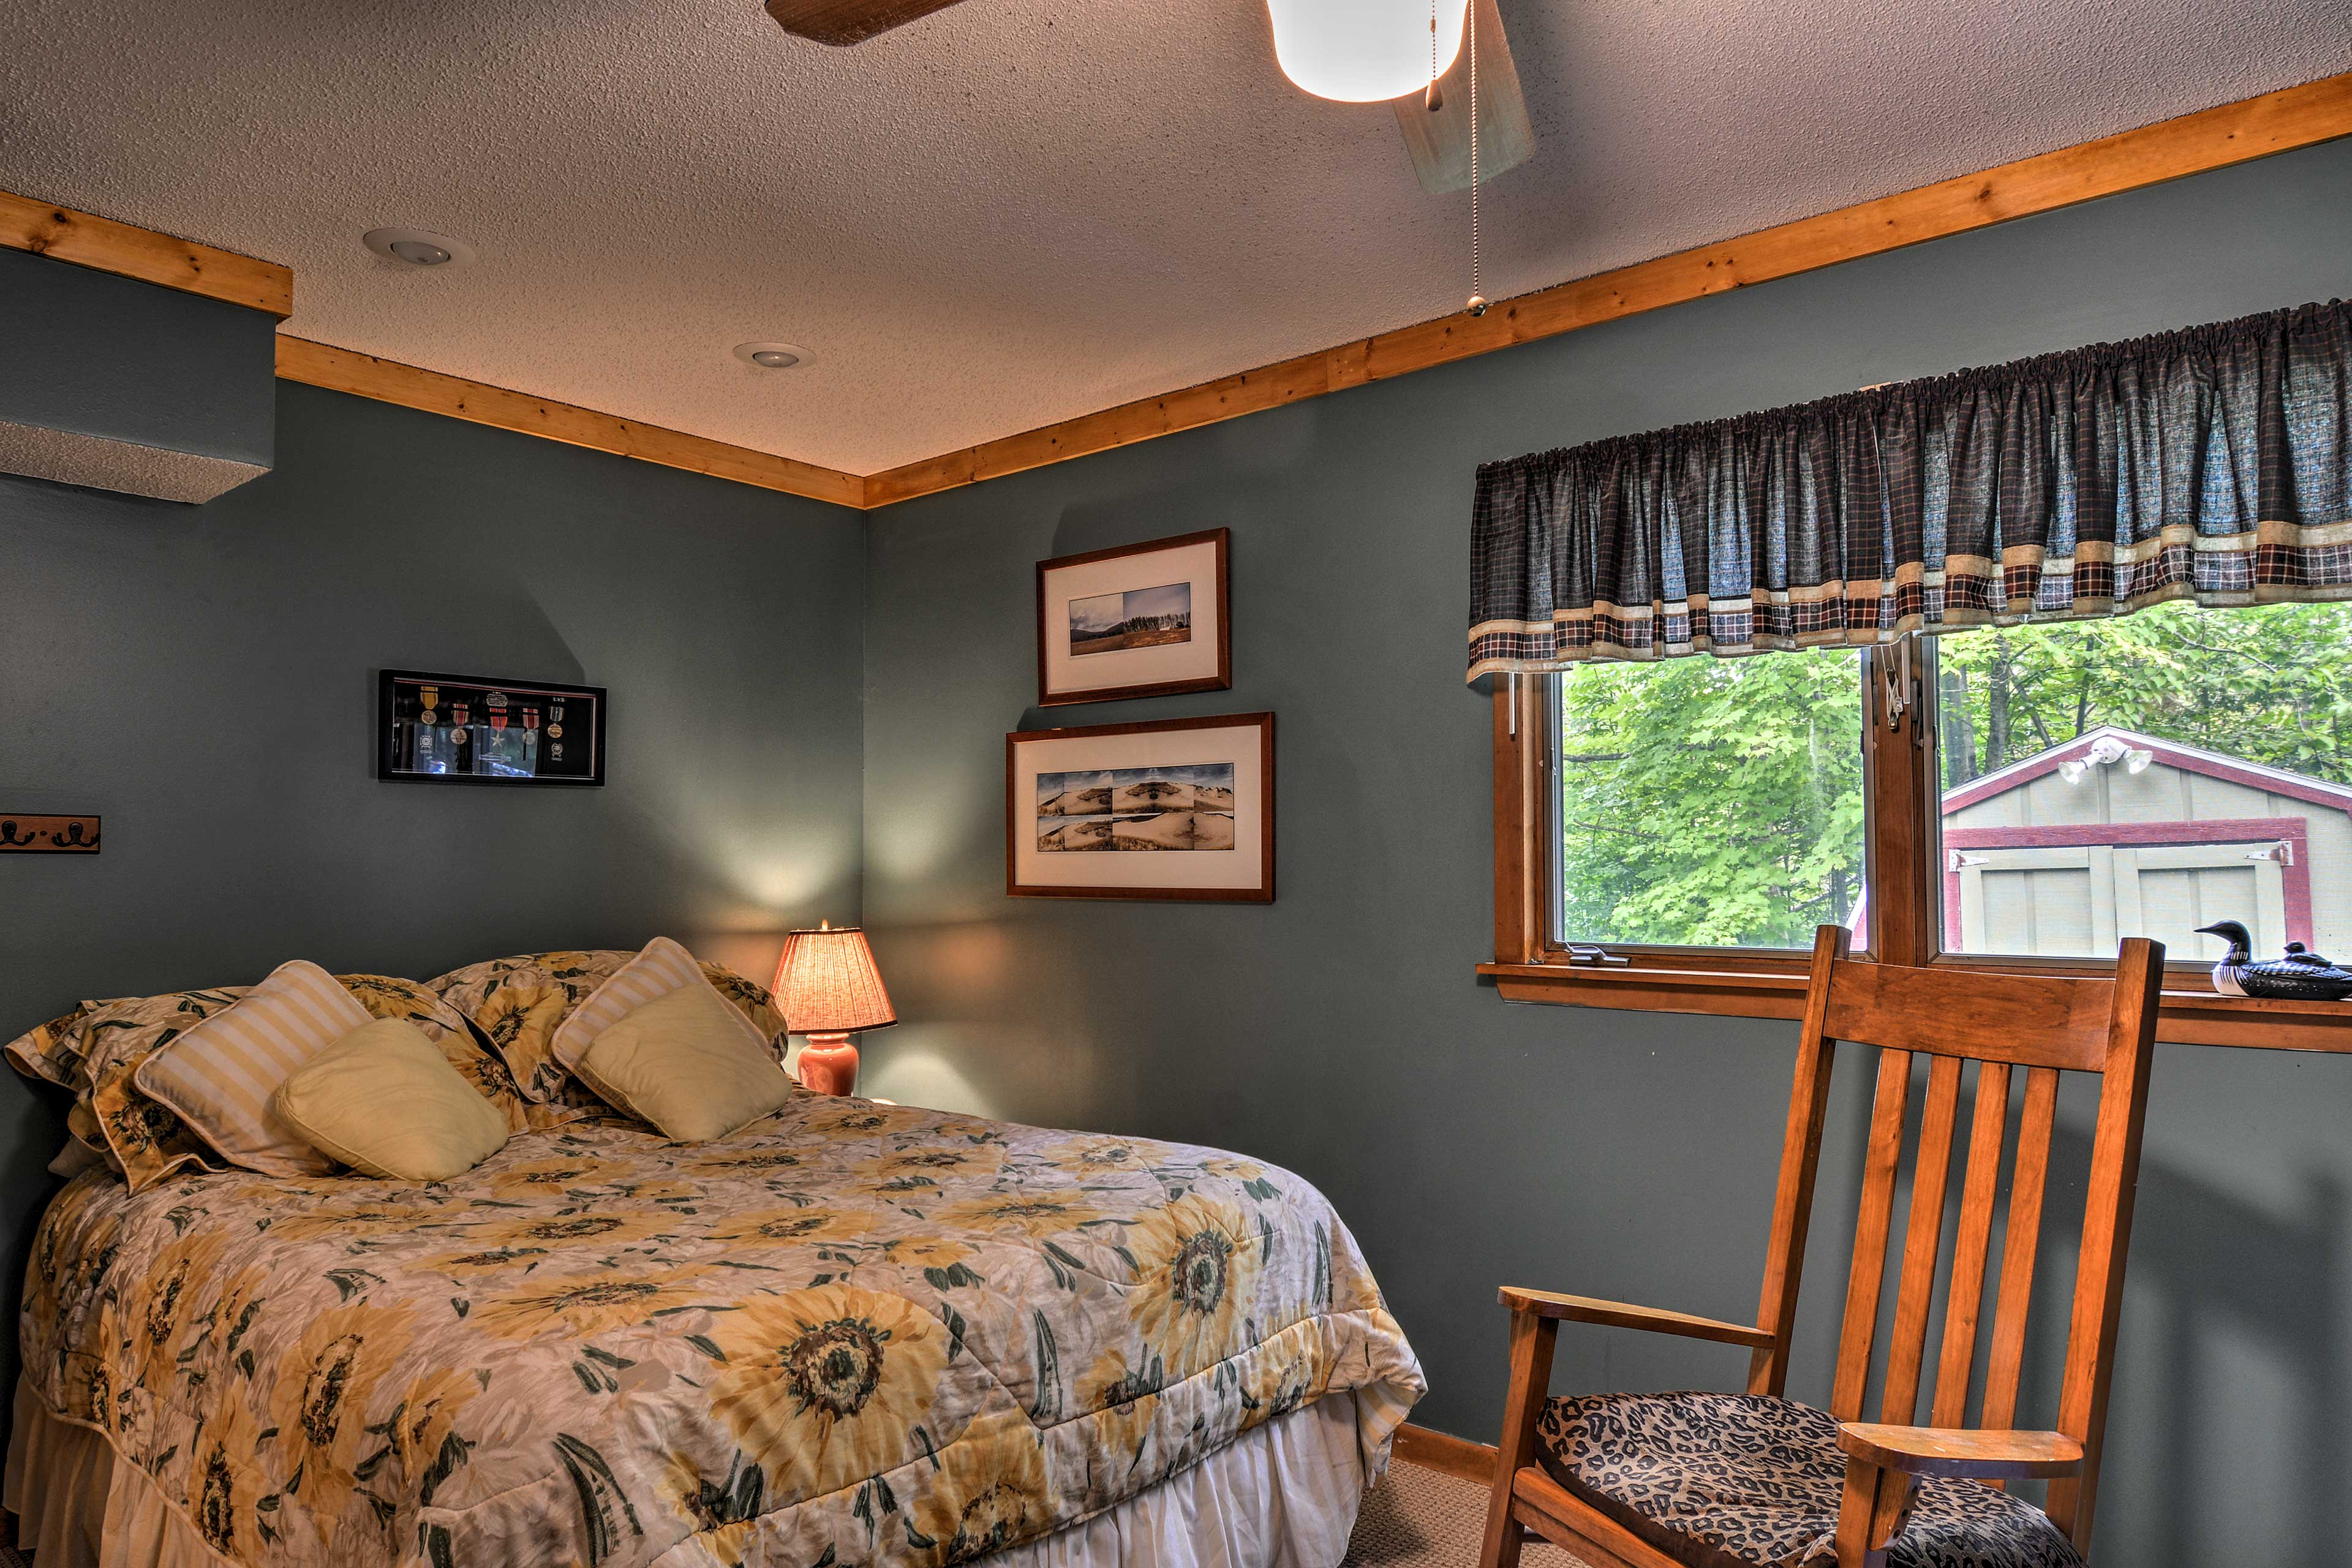 Downstairs, the third bedroom offers a queen bed and twin-over-twin bunk bed.